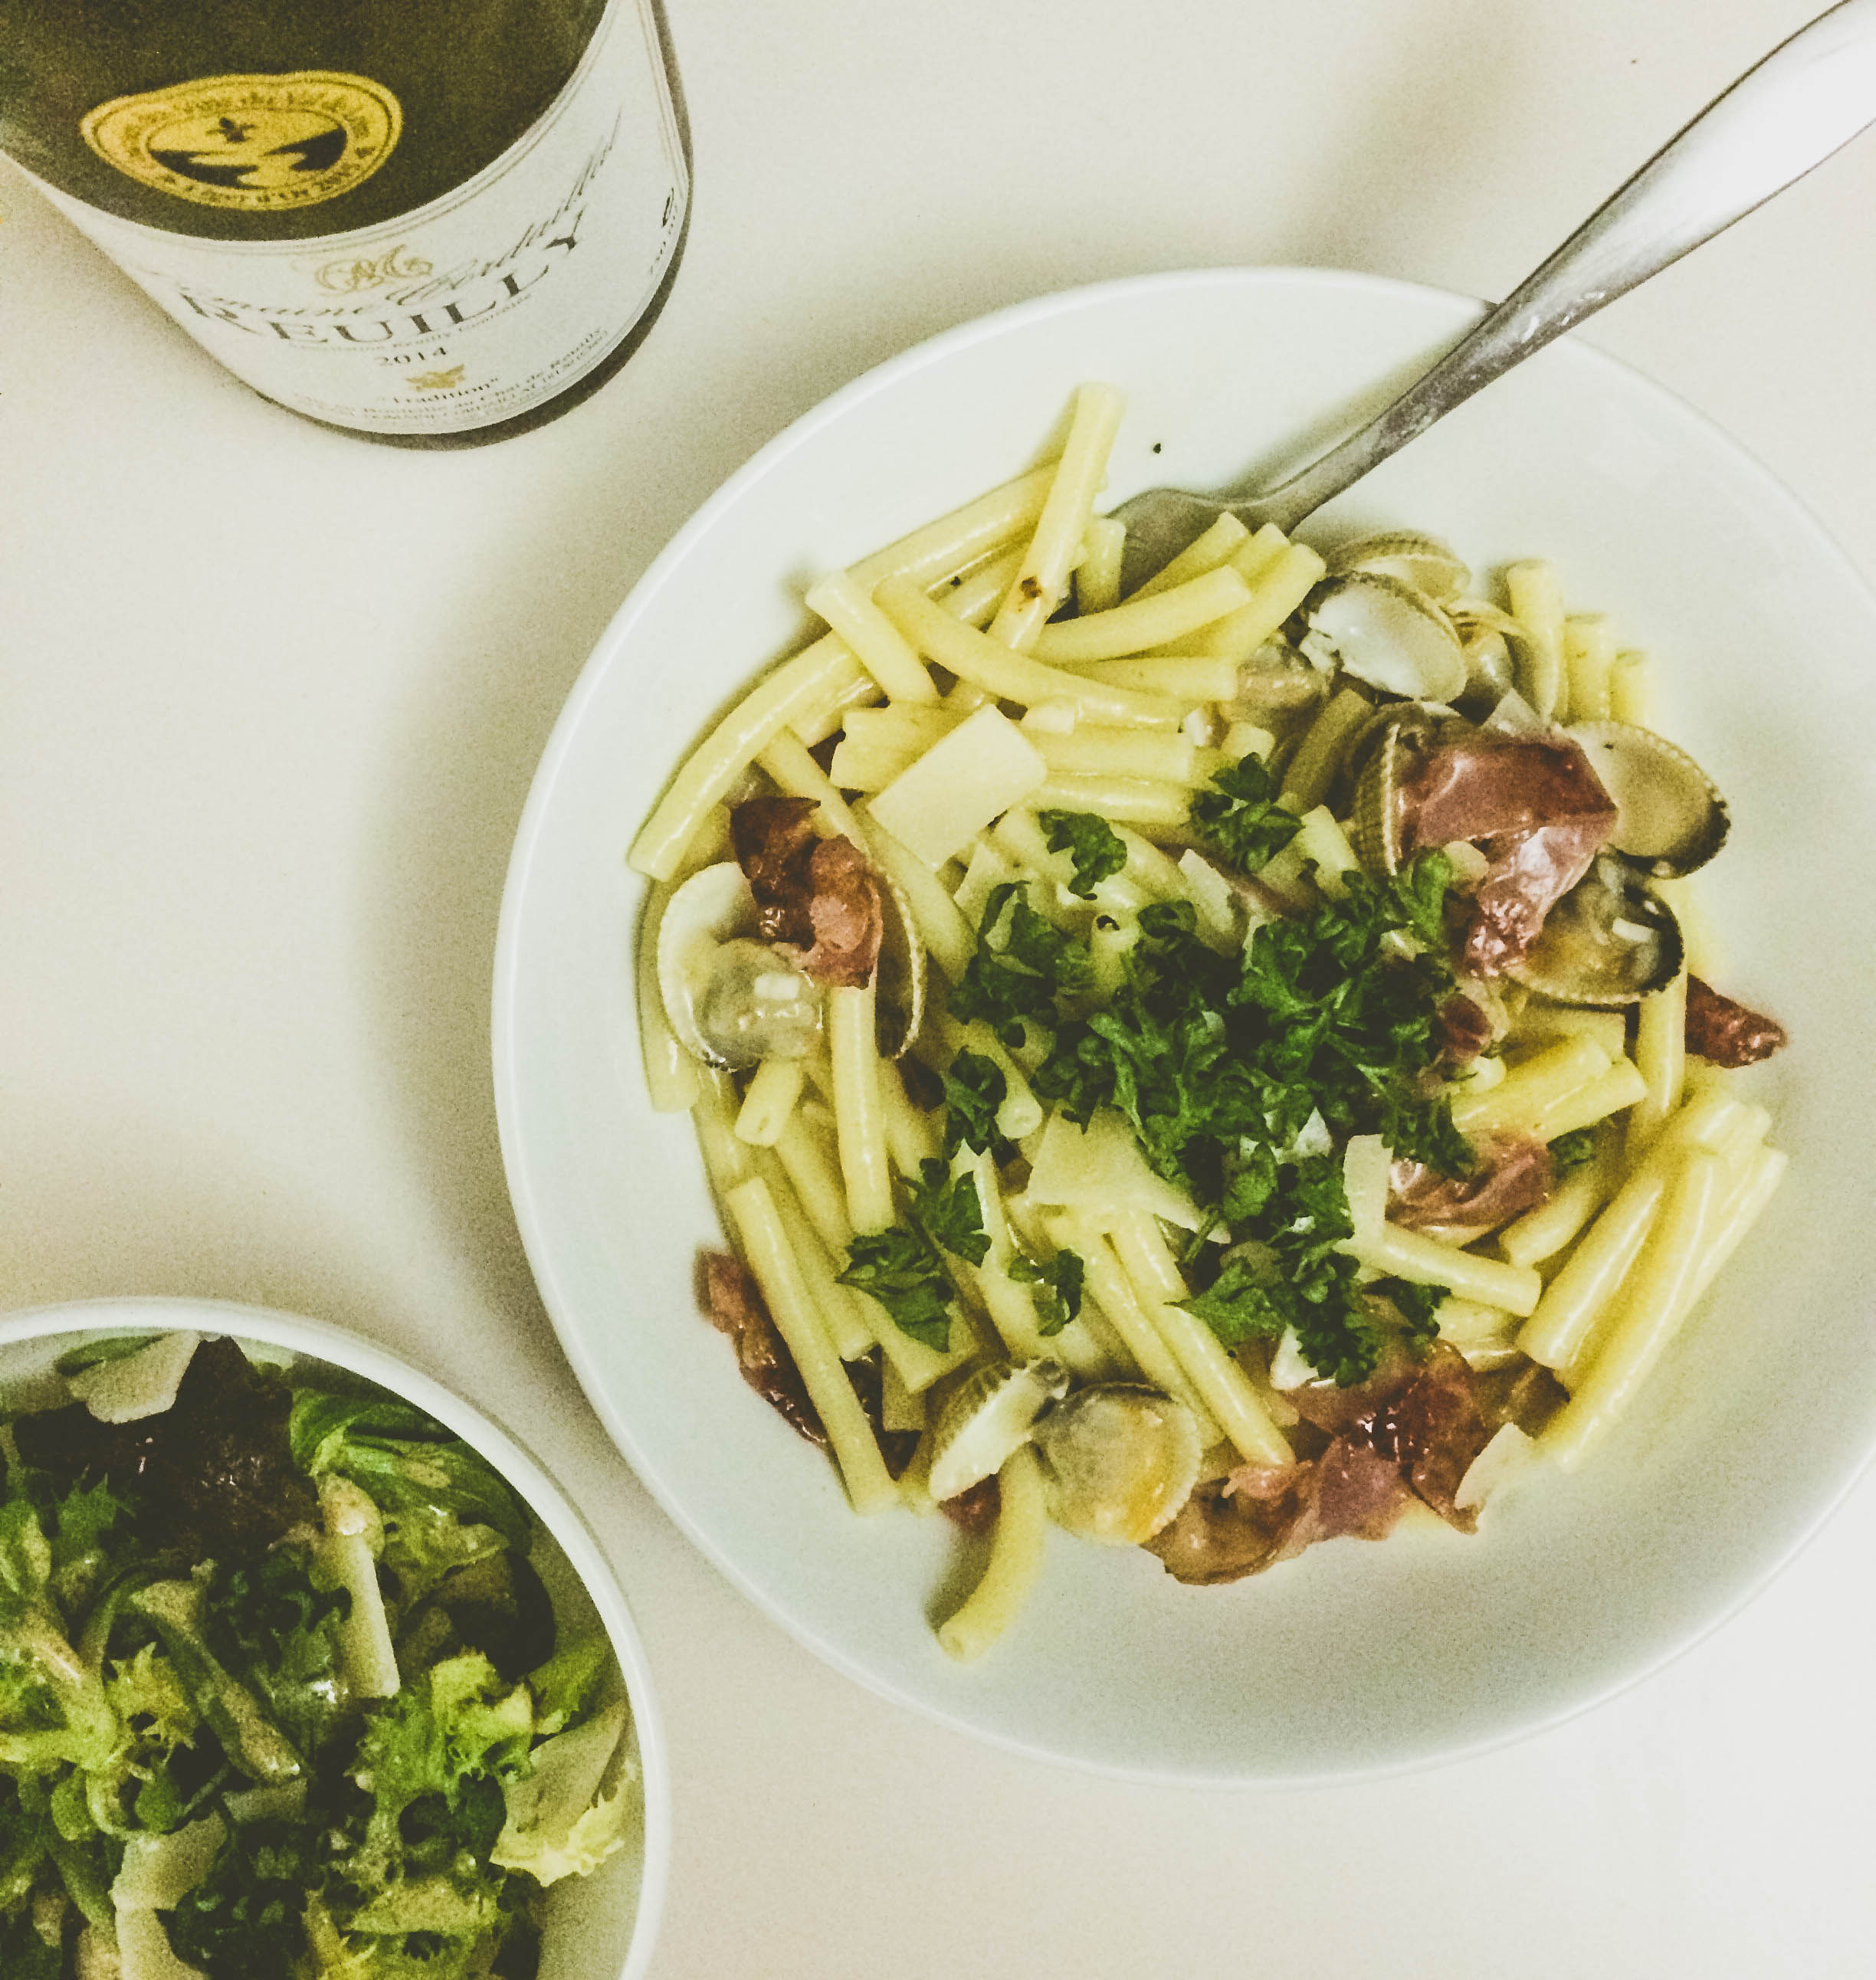 Finished pasta with cockles, pancetta and parsley, a green salad and crisp white wine.